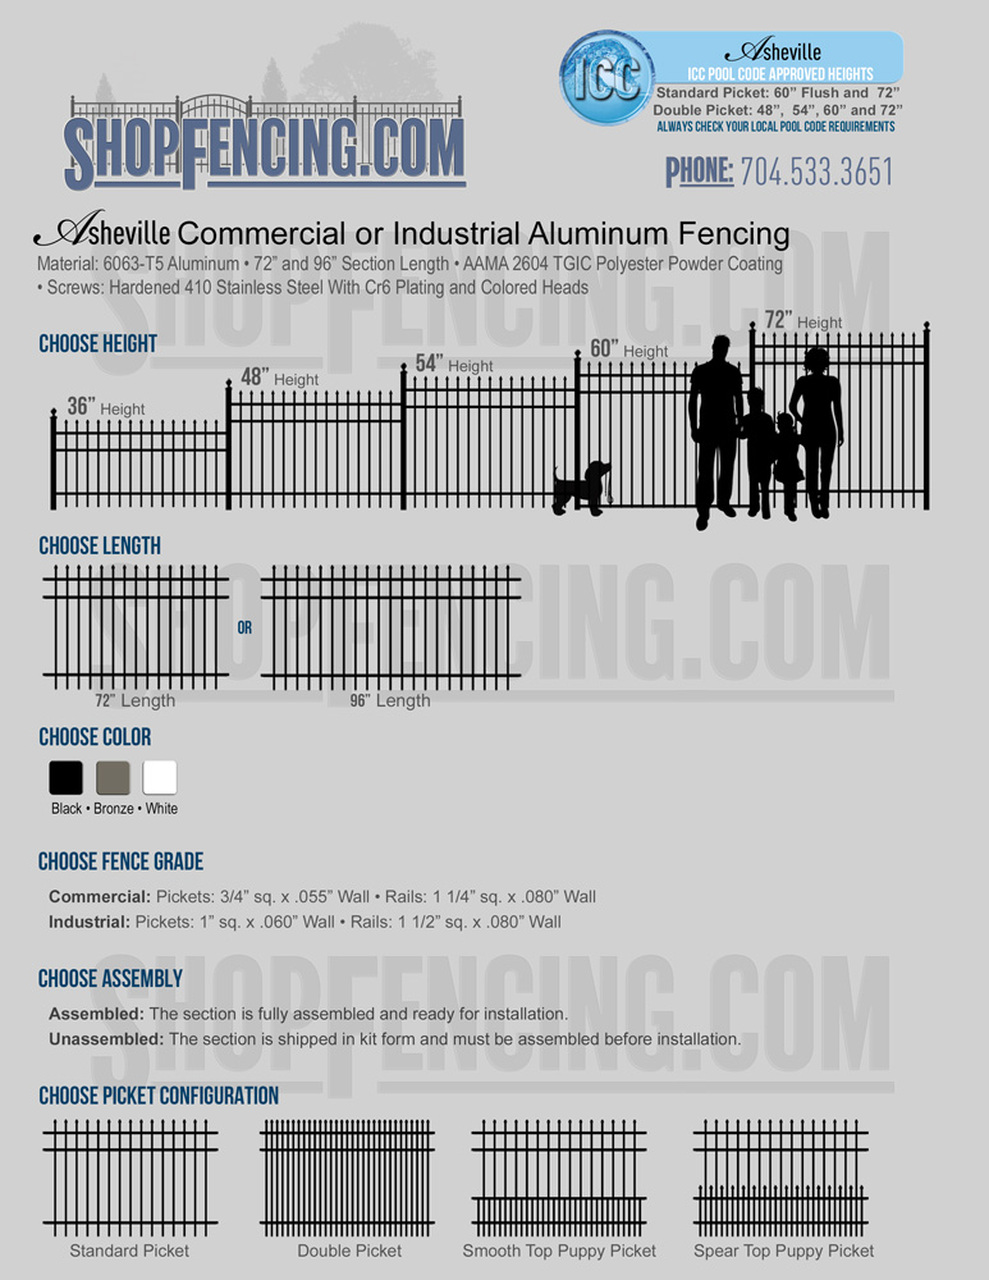 Commercial or Industrial Asheville Aluminum Fencing From ShopFencing.com